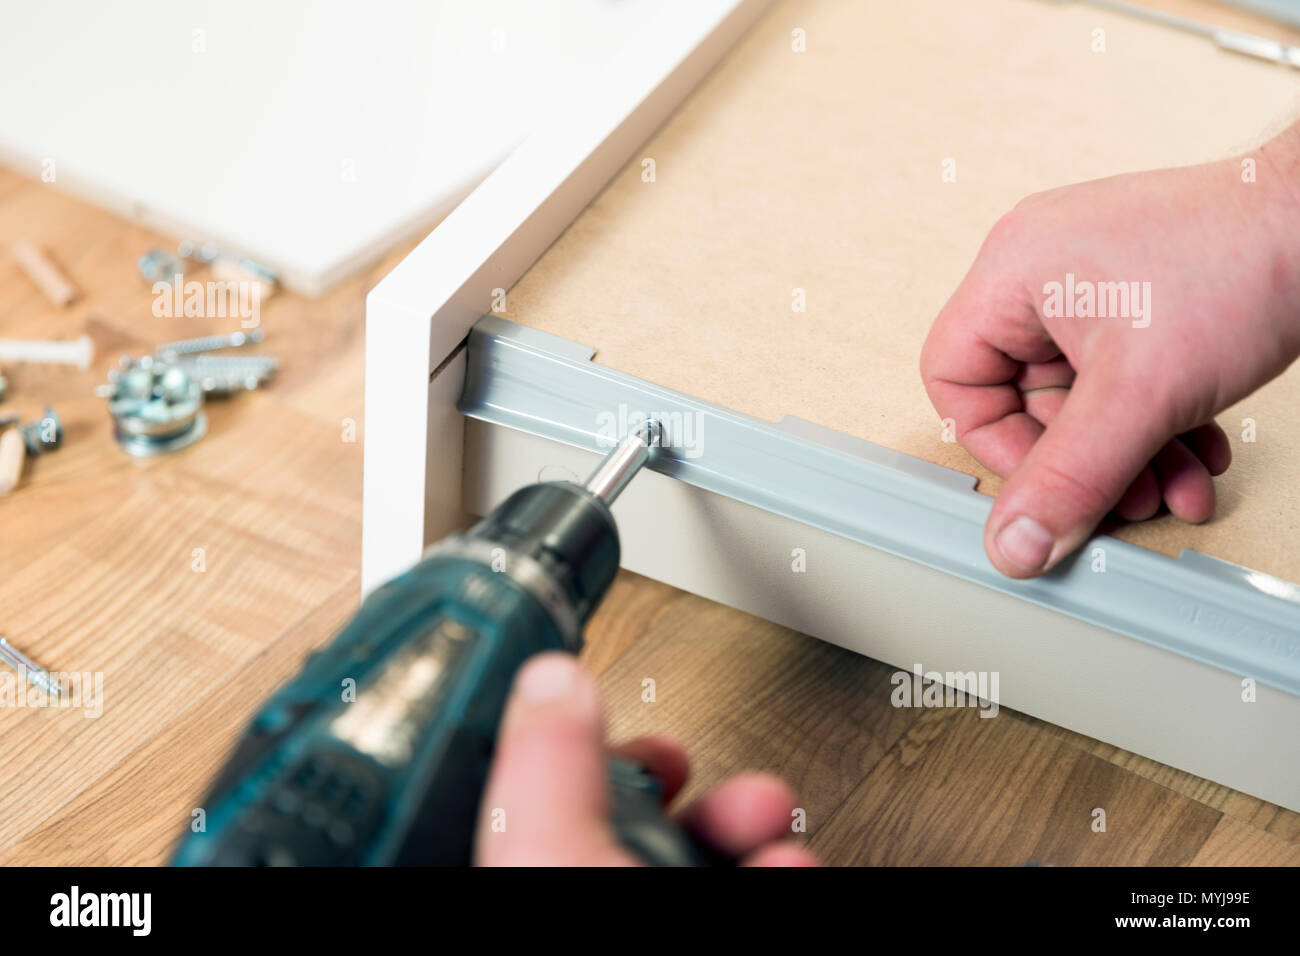 Assembling furniture from chipboard, using a cordless screwdriver - Stock Image